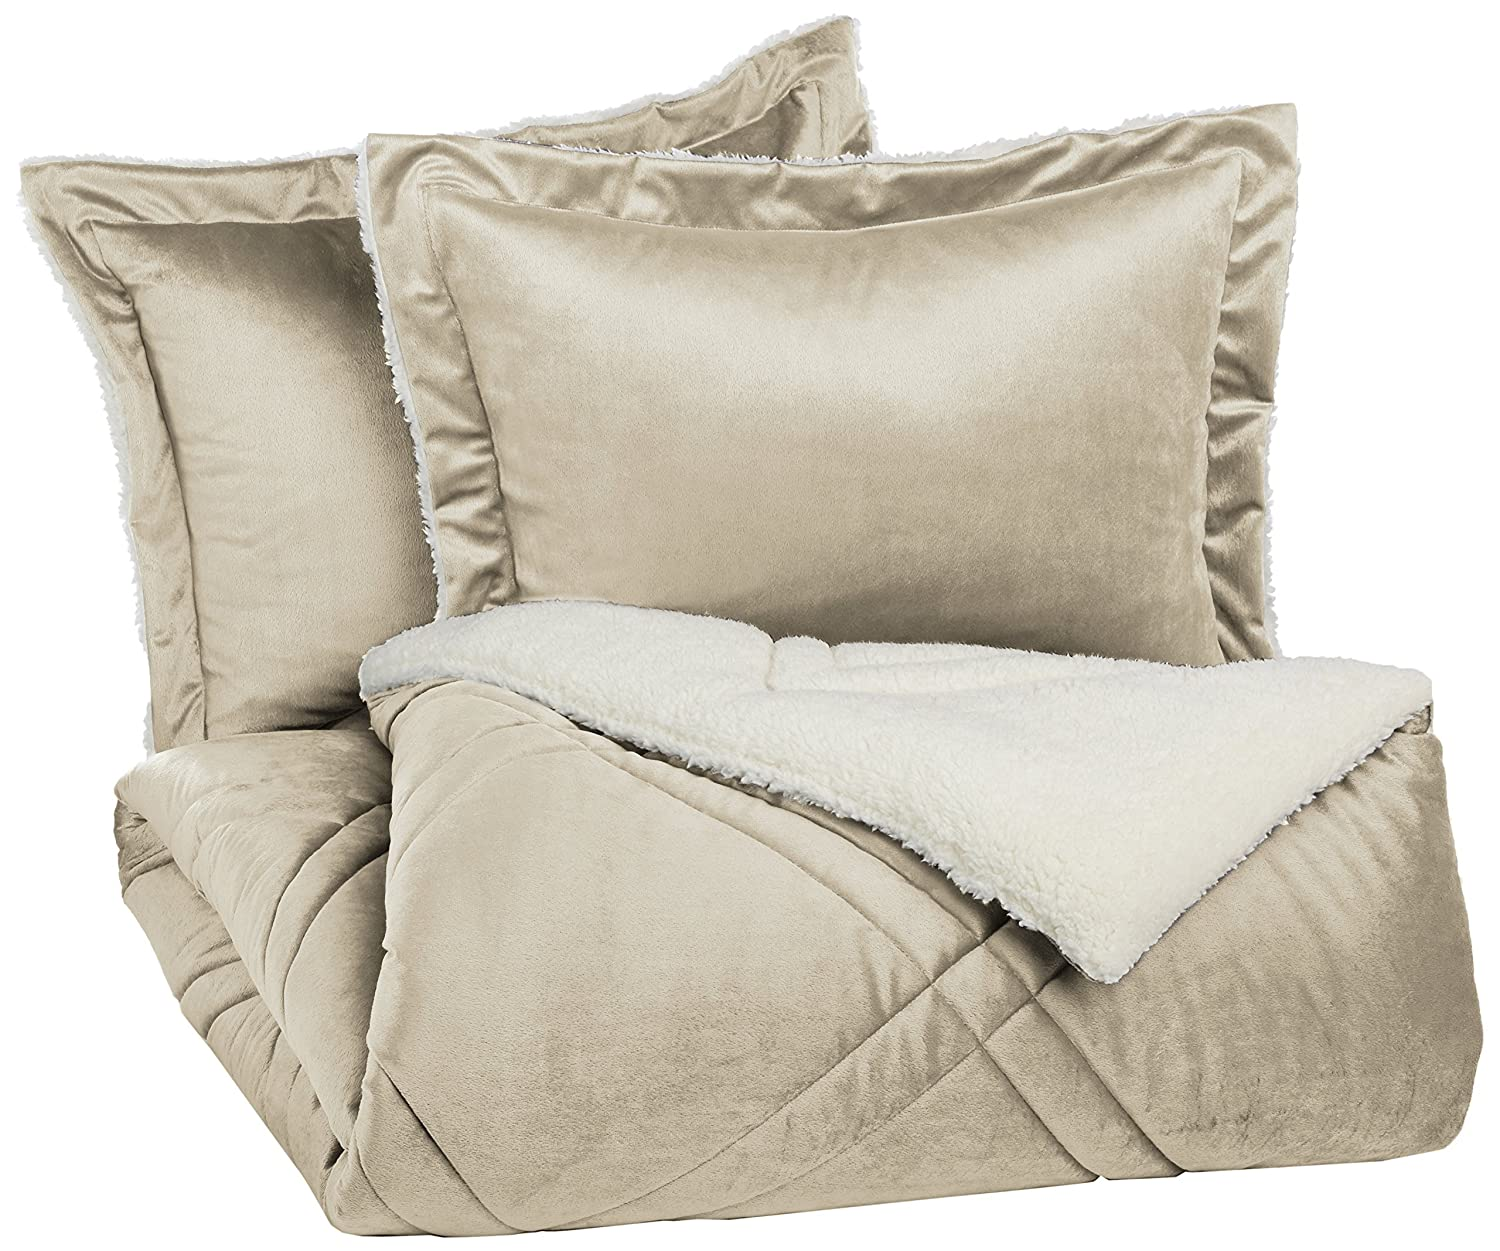 Pinzon Plush Hypoallergenic Diamond Stitch Comforter Set - Full/Queen, Bone